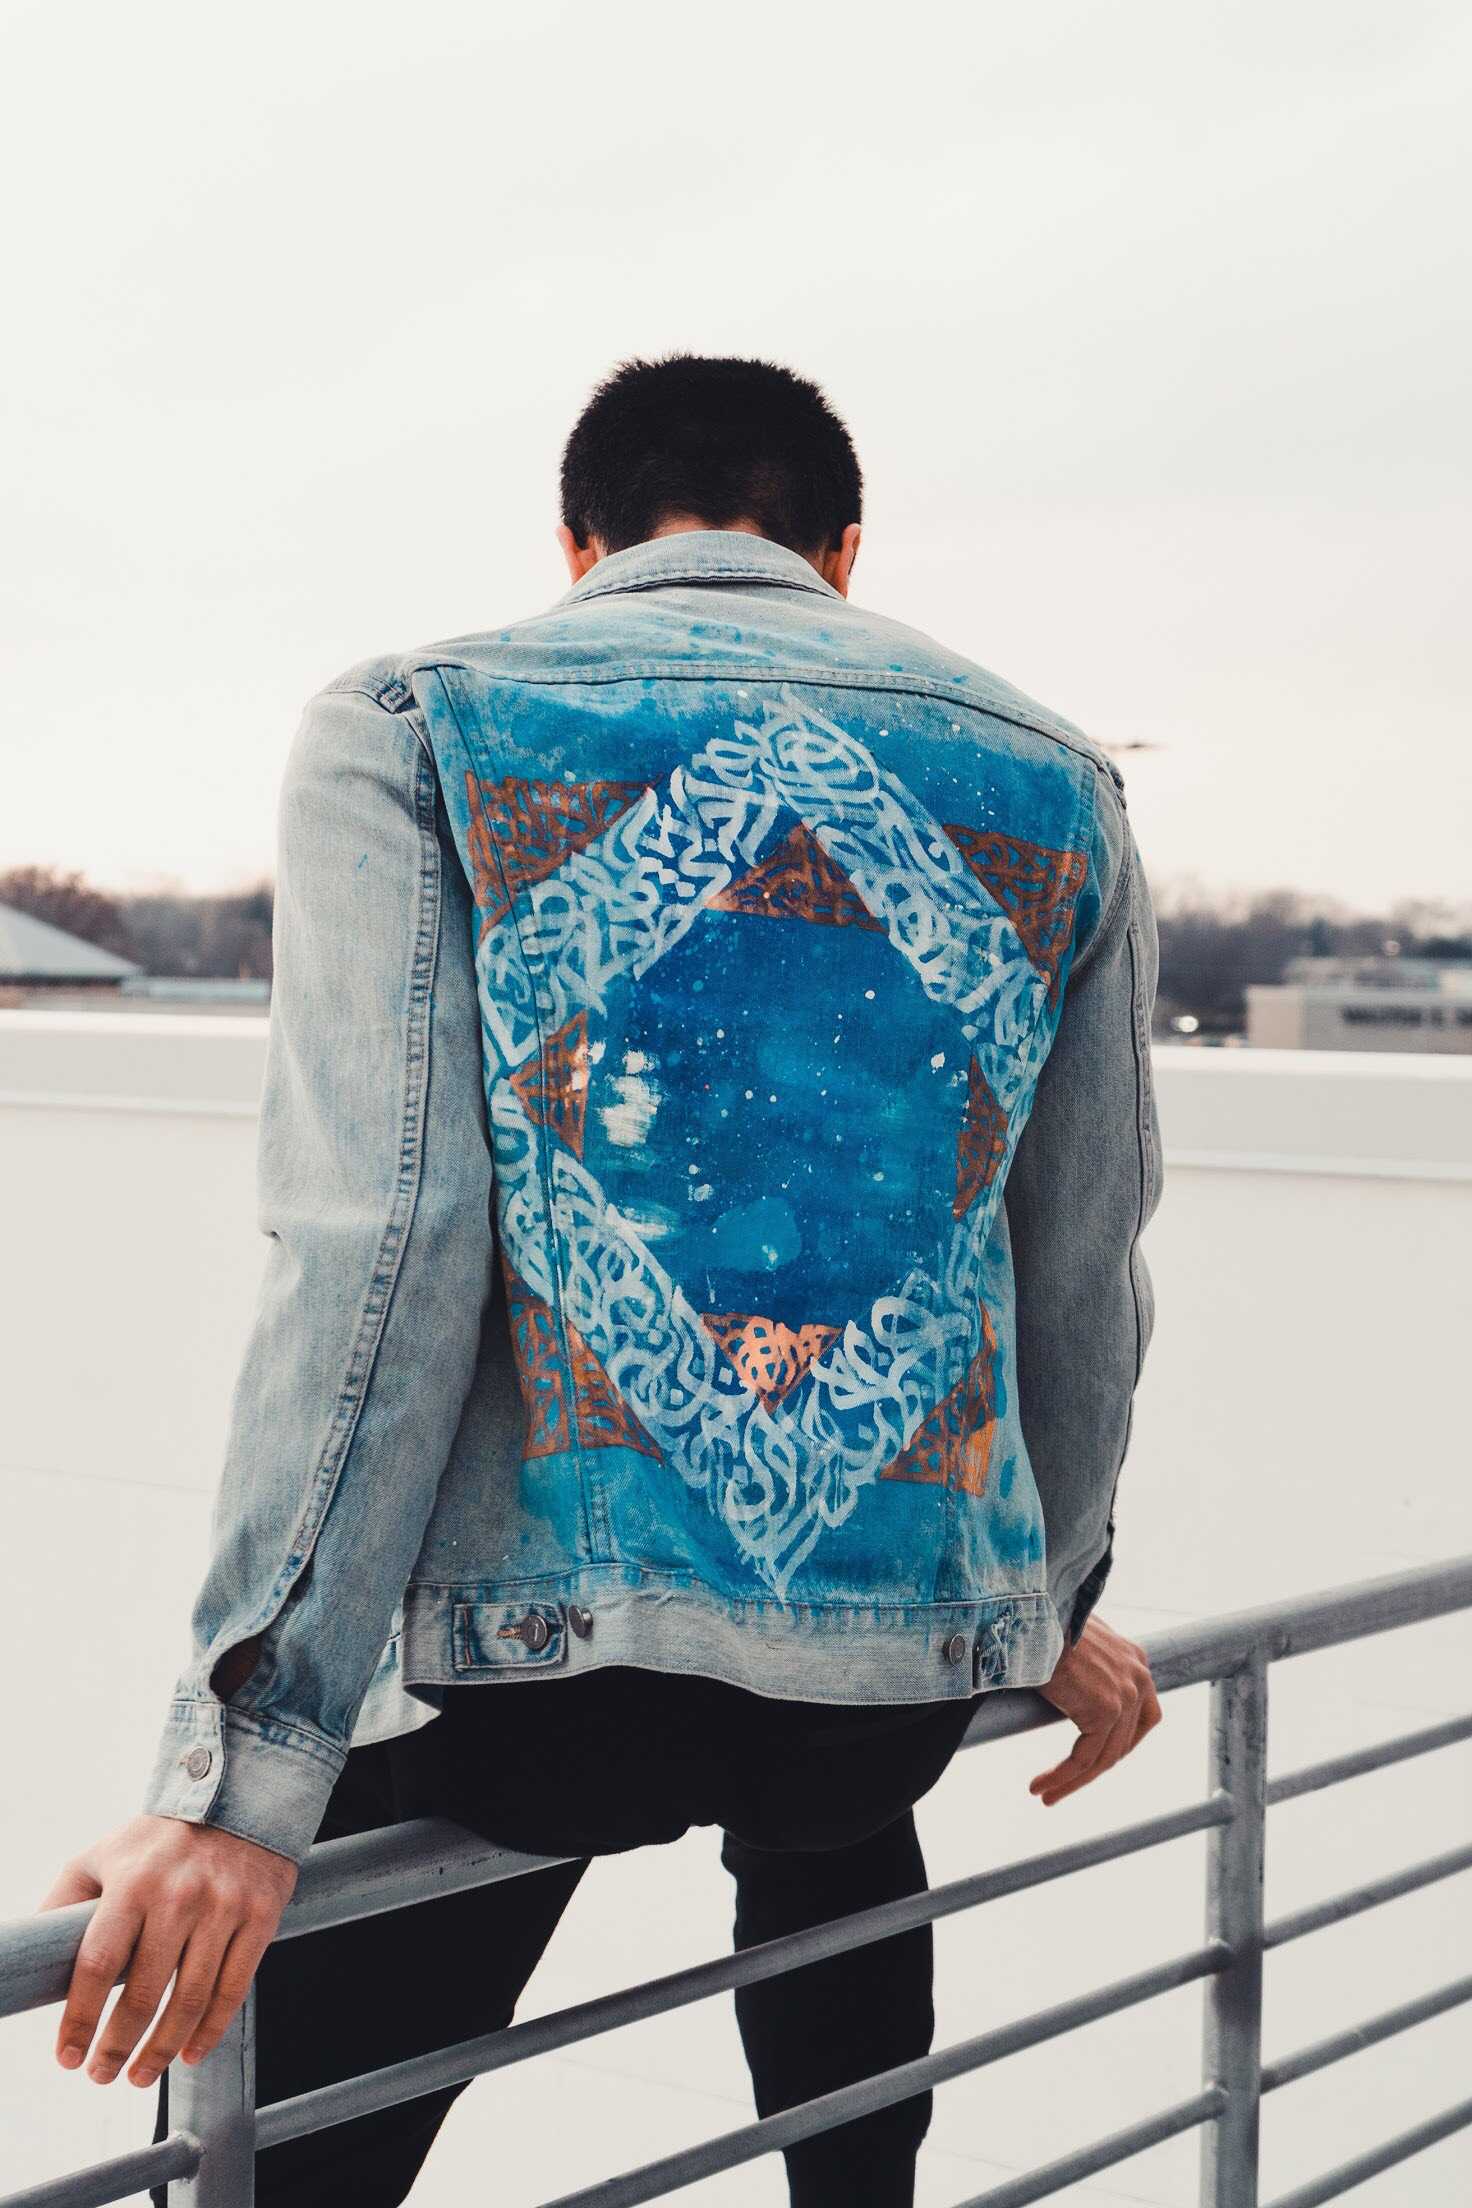 """""""Arabic Calligraffiti in Geometric Pattern on a Denim Jacket: 'and what would you do, in your infinite knowledge?'"""""""